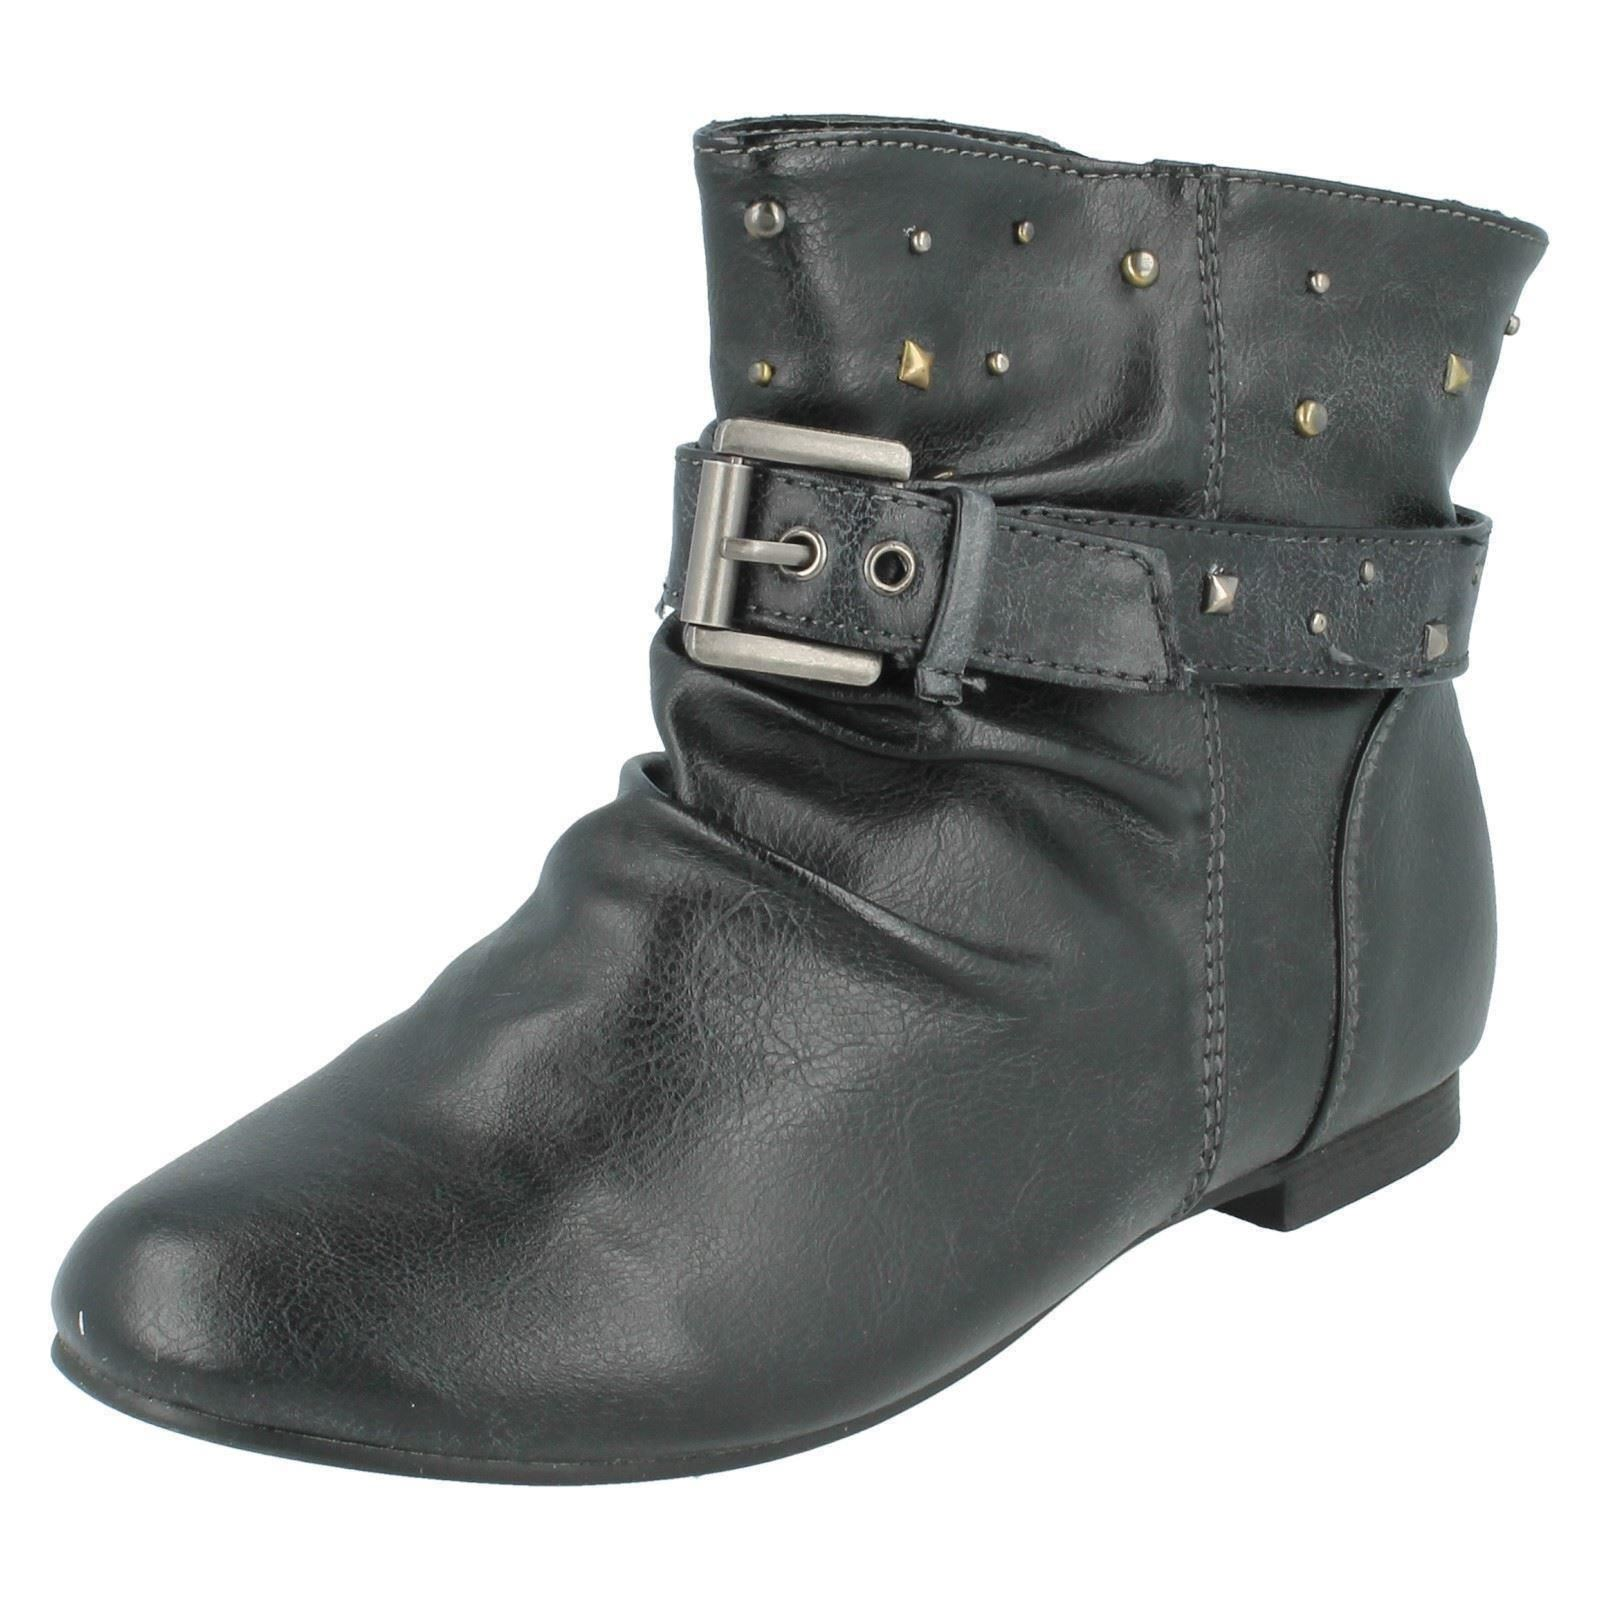 Girls Cutie Qt Ankle Boots With Stud Detail The Style - H4054